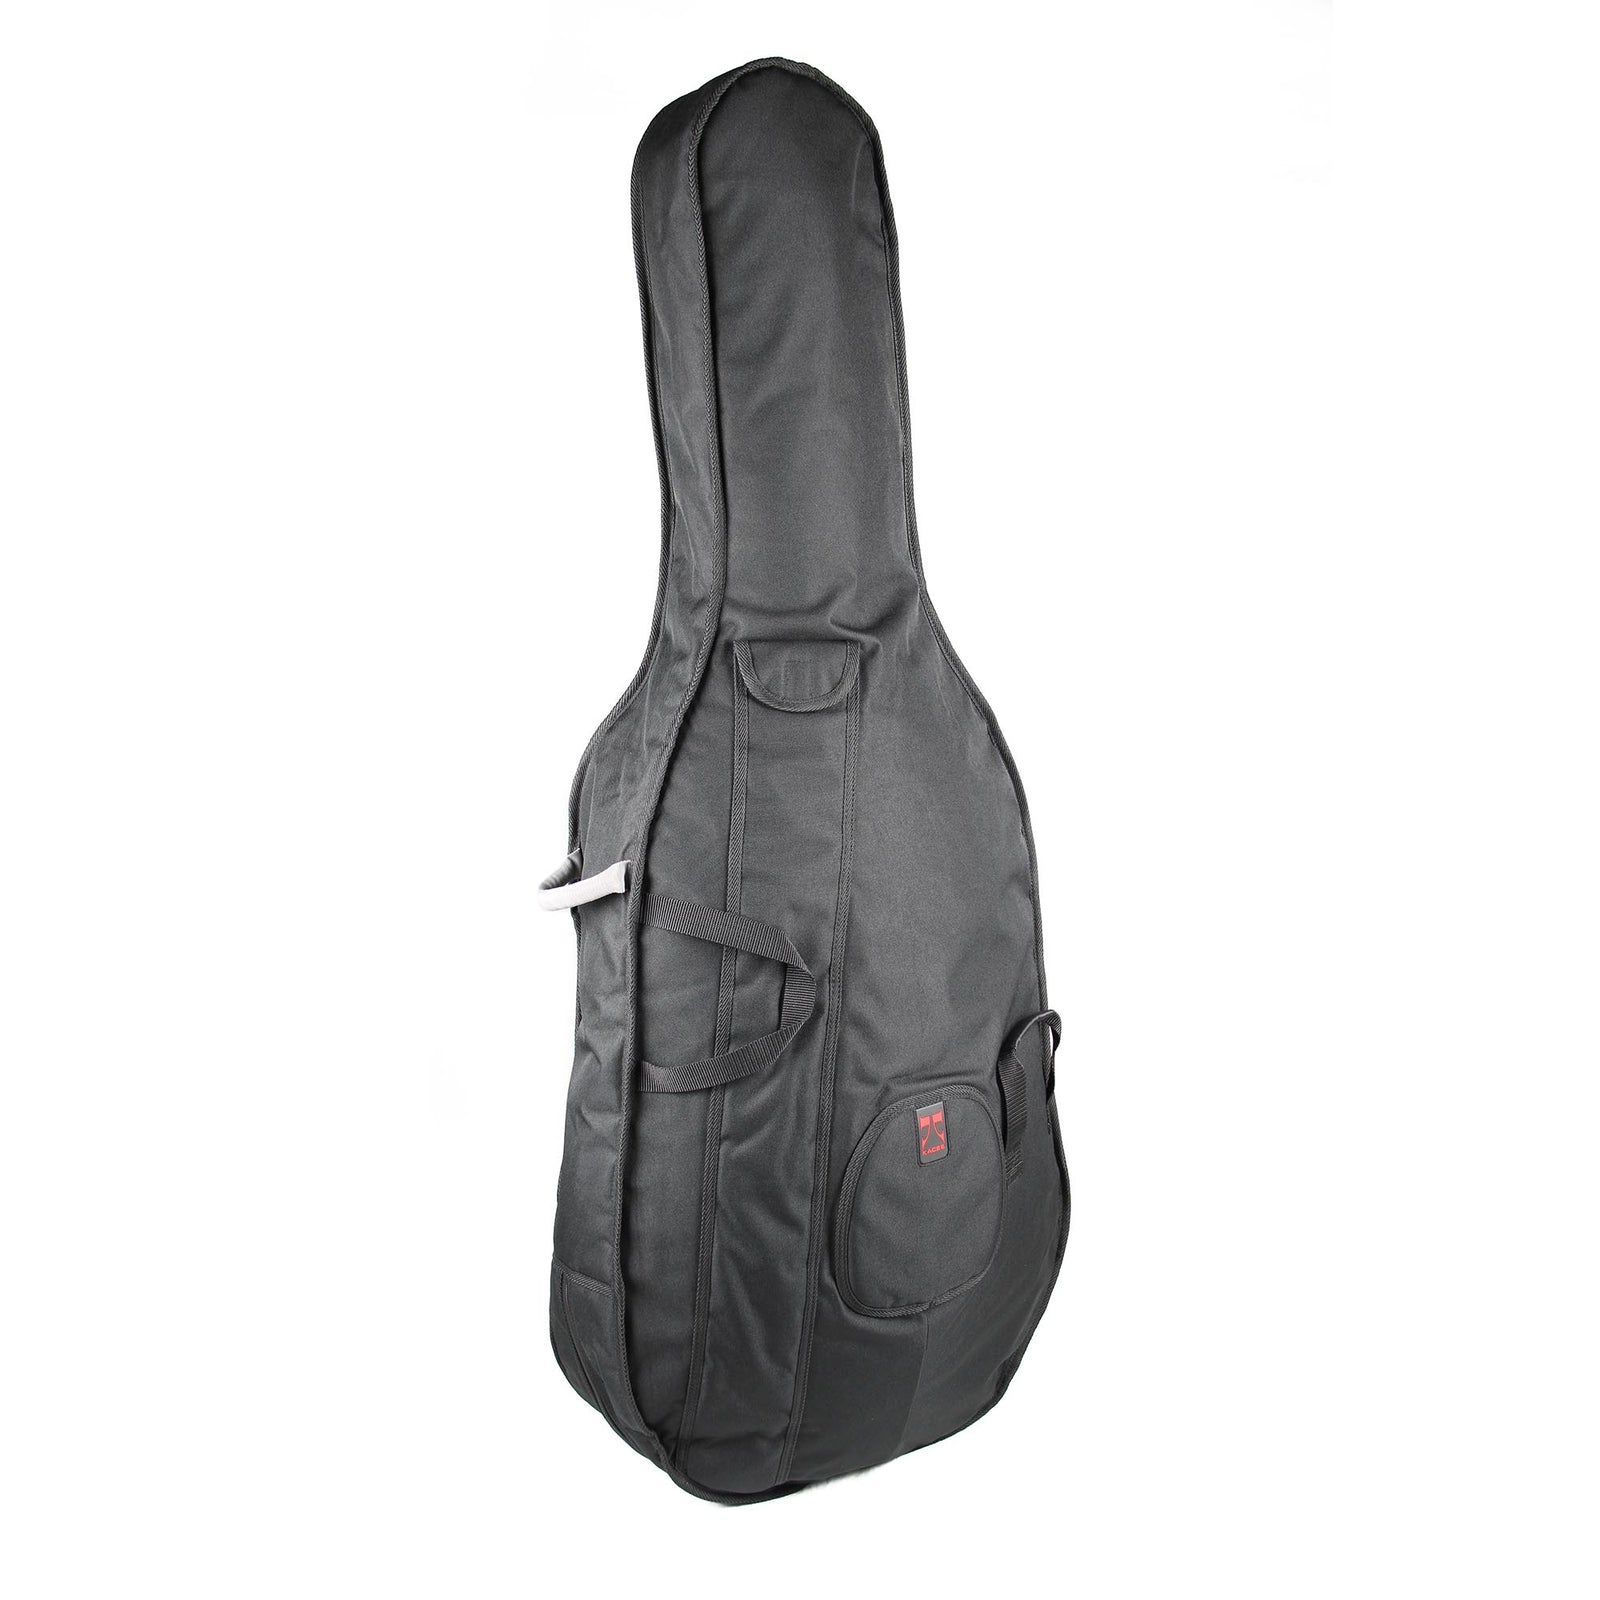 Kaces University Series 4/4 Size Cello Bag